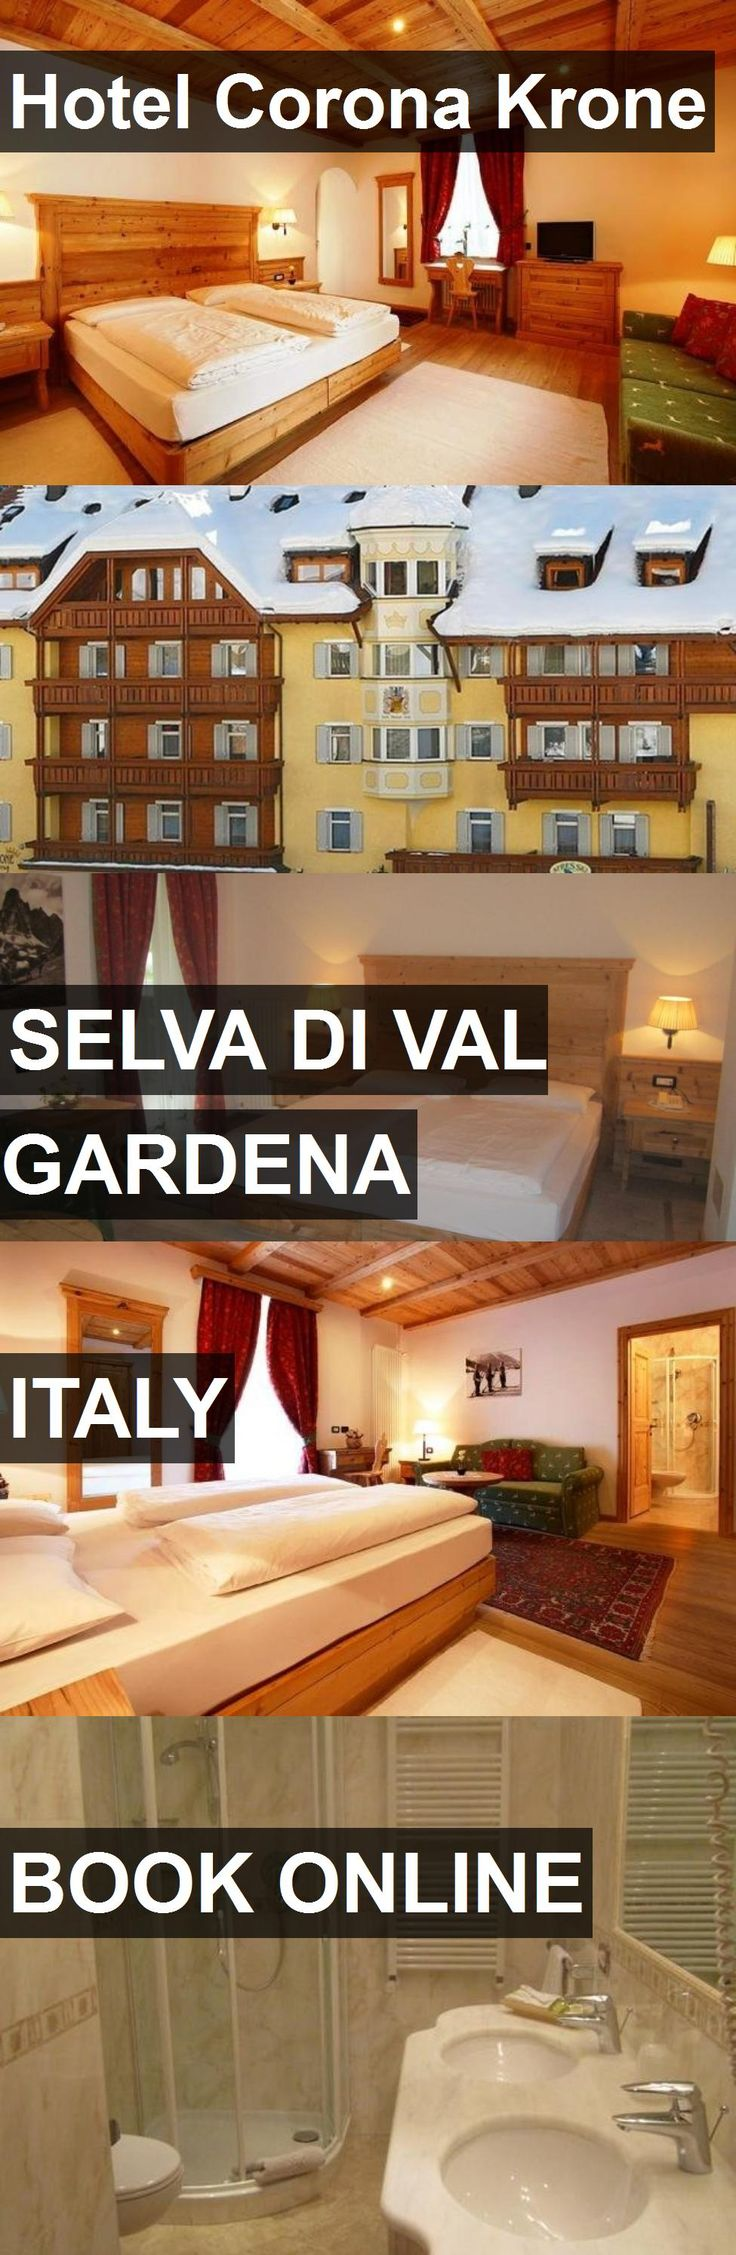 Hotel Corona Krone in Selva di Val Gardena, Italy. For more information, photos, reviews and best prices please follow the link. #Italy #SelvadiValGardena #travel #vacation #hotel